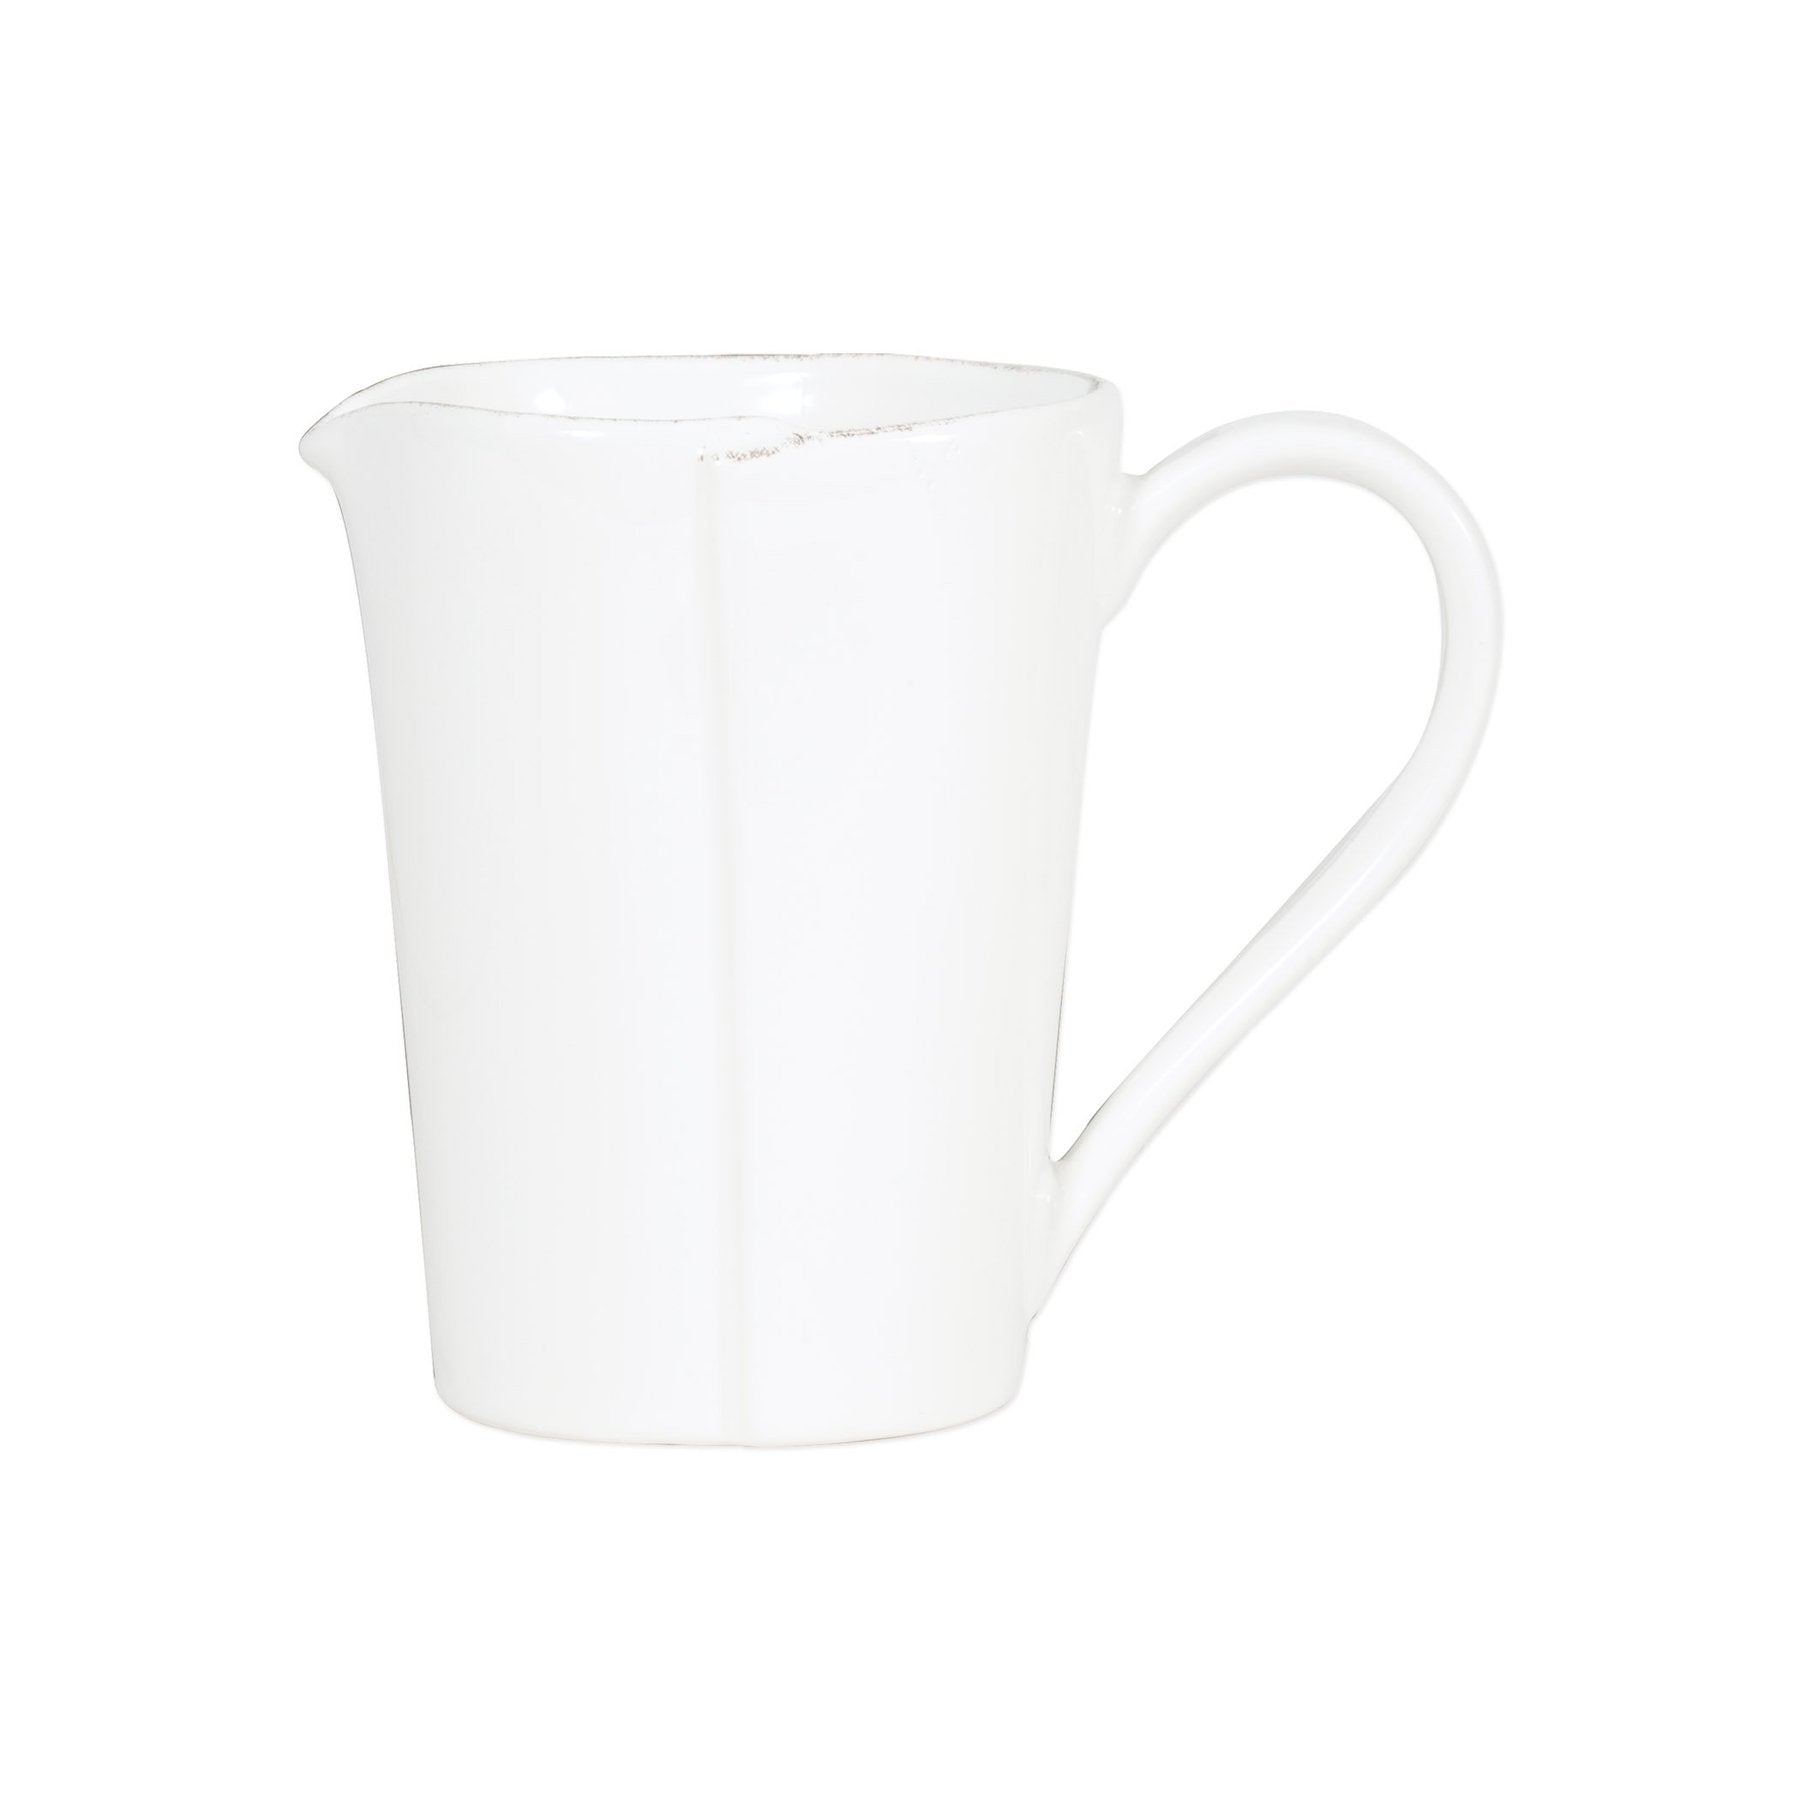 Vietri - Lastra White Pitcher